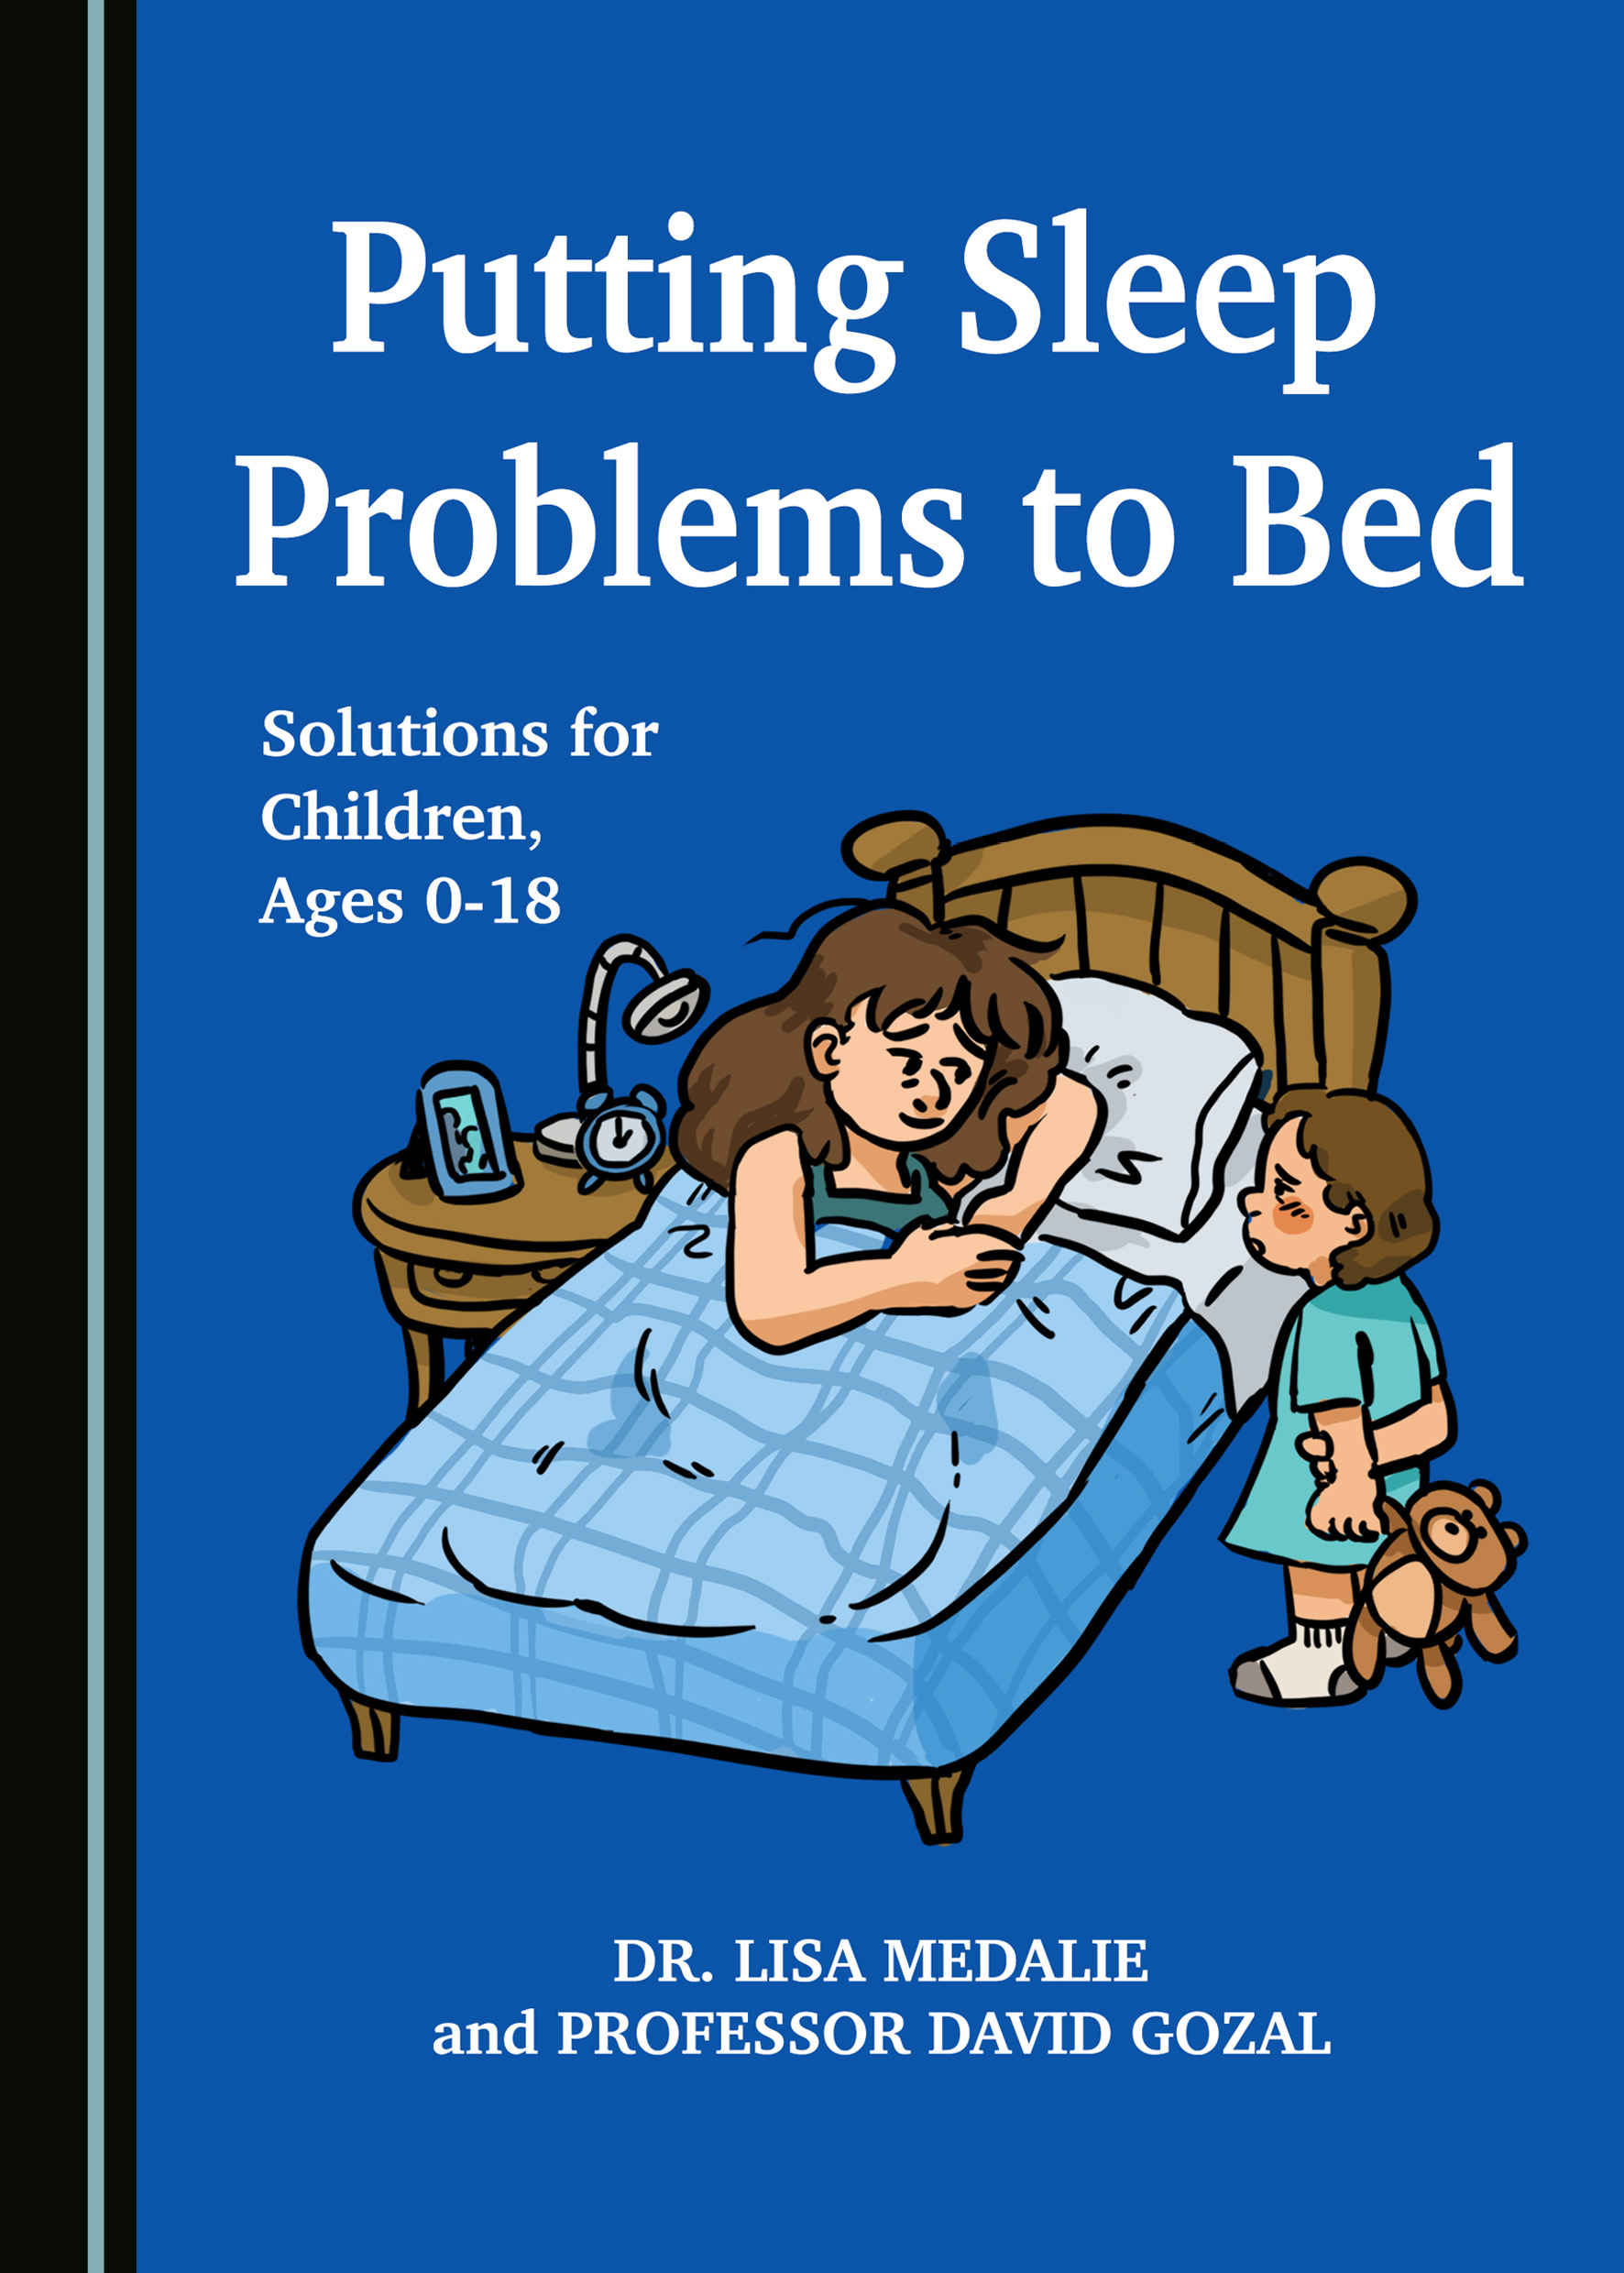 Putting Sleep Problems to Bed: Solutions for Children, Ages 0-18